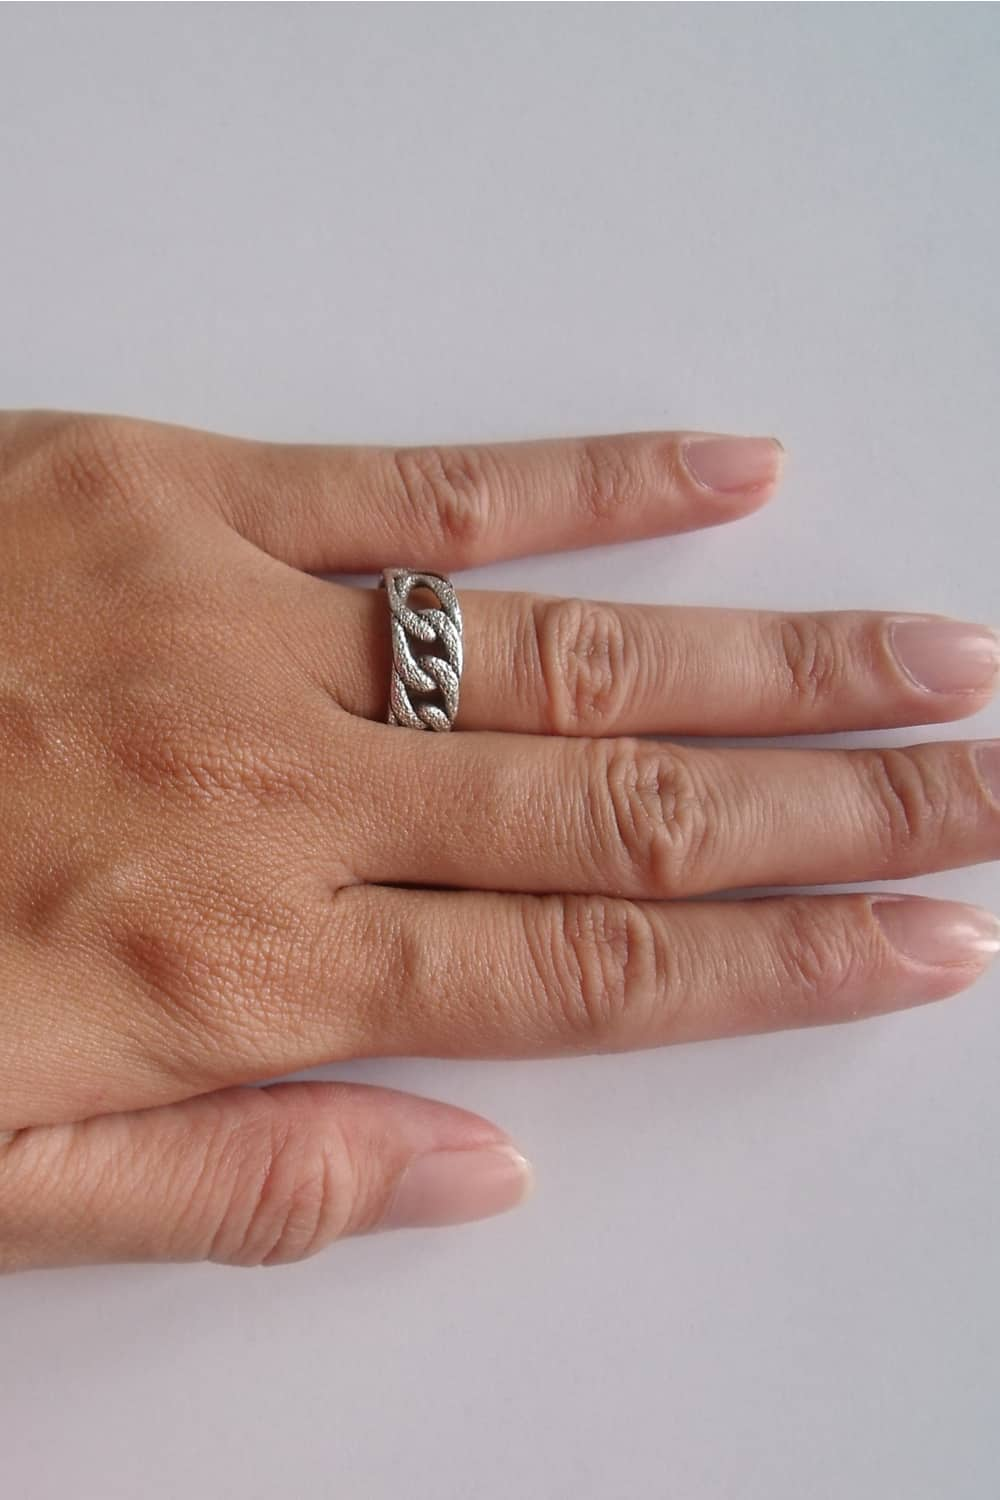 What are the major triggers that cause metals in your ring to abrase or corrode